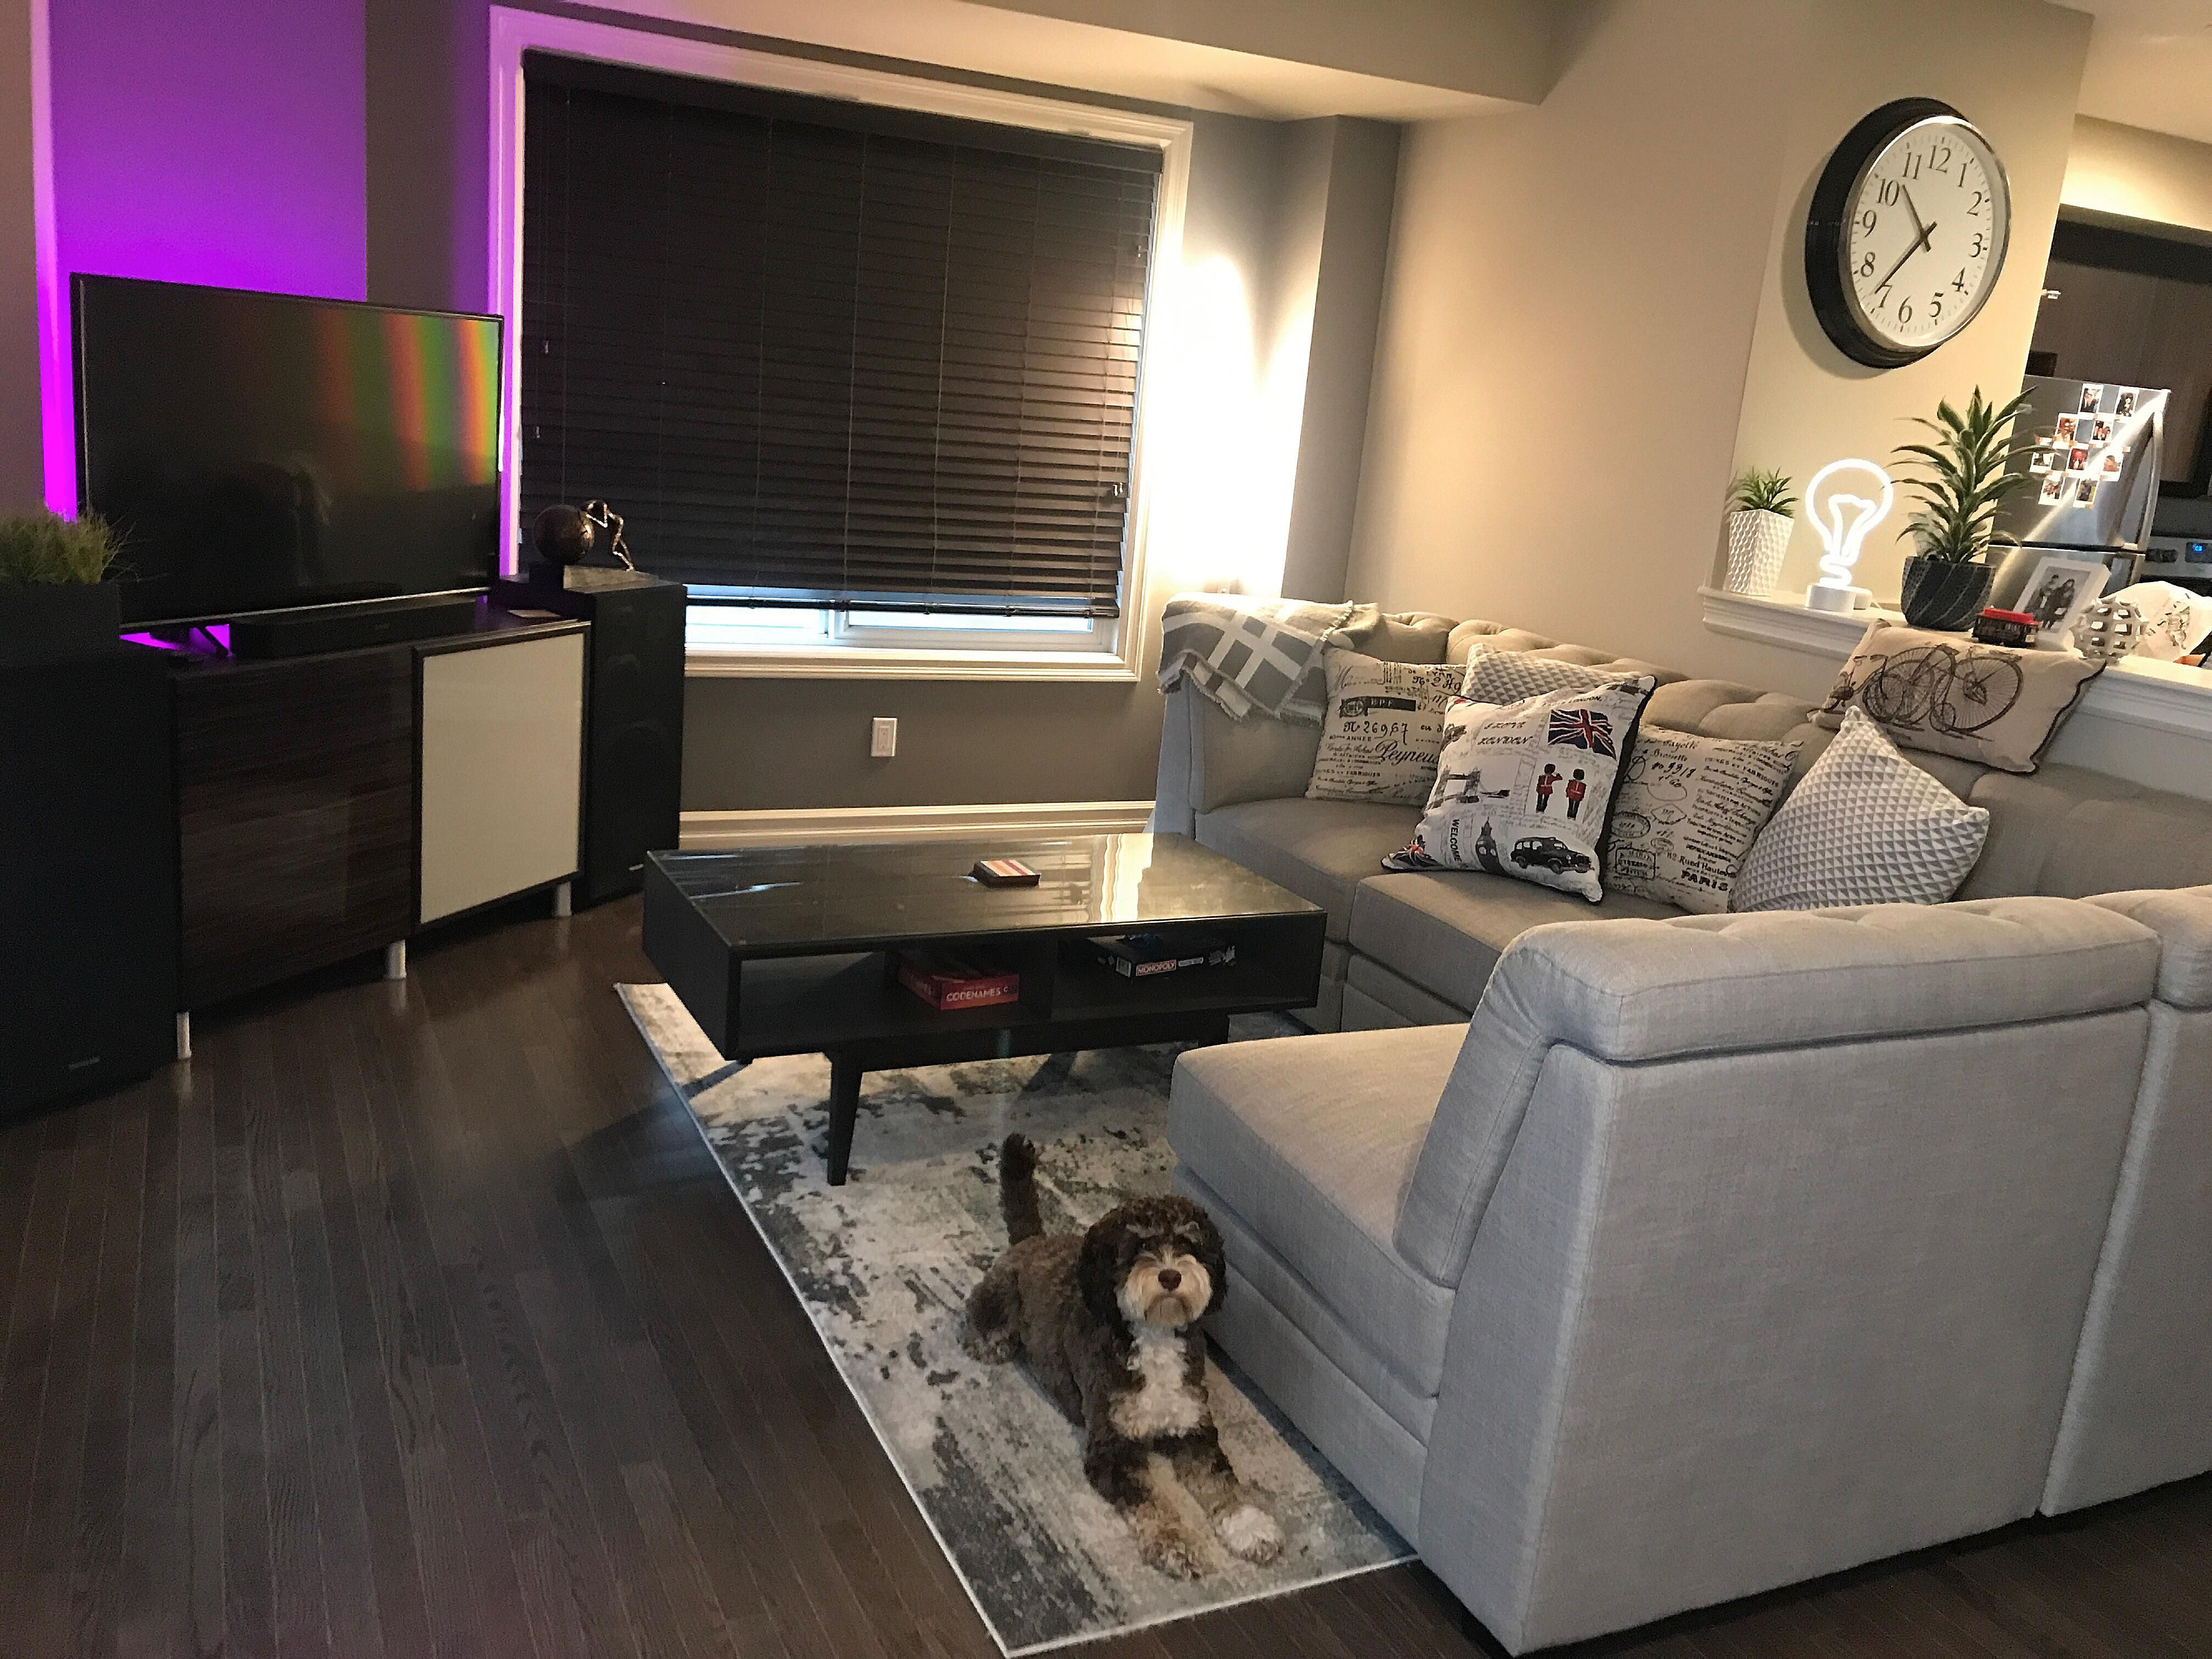 Thanks To All For Helping Me Decorate My Living Room Edmonton Ab Canada Small Living Room Design Man Room Apartment Decor #redecorating #my #living #room